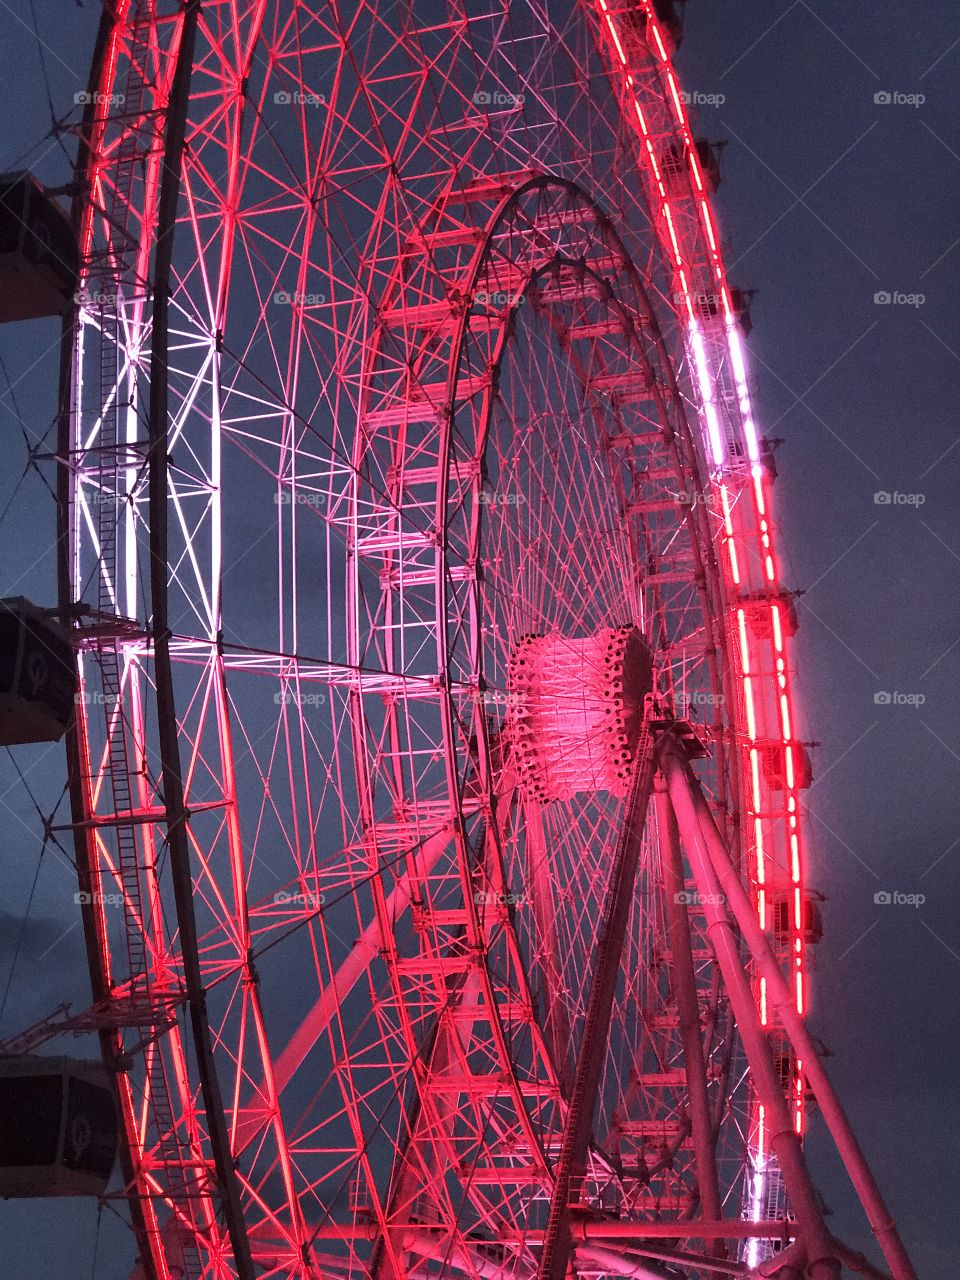 .odnalrO ni detacol tneduts FCU nA  .asleS yb kcilC Follow me @Selsa.Notes, @Selsa.Clicks, or @Selsa.Quotes.  The Orlando Eye.  Bought by CocaCola, July 28, 2016.  Was a business investment to be able to observe the city from the ferris wheel that stands 400 feet high.  It spins at a very slow rate and cost $25 to ride.  It opened April 29th, 2015.  Total of 75 photos in this album of the Coca Cola eye.  The colors displayed on the daily basis is red & white representing classic coke.  A white color that skips to represent carbonation  and green every once in a while for the sugar cane coke.  Then the rainbow colors sadly represent the Pulse shooting victims (album) and the solid blue is for the law enforcement officers killed in the line of duty. In Aug17.  Officer Baxter and Sgt. Howard.  Rest in Heavenly Peace.